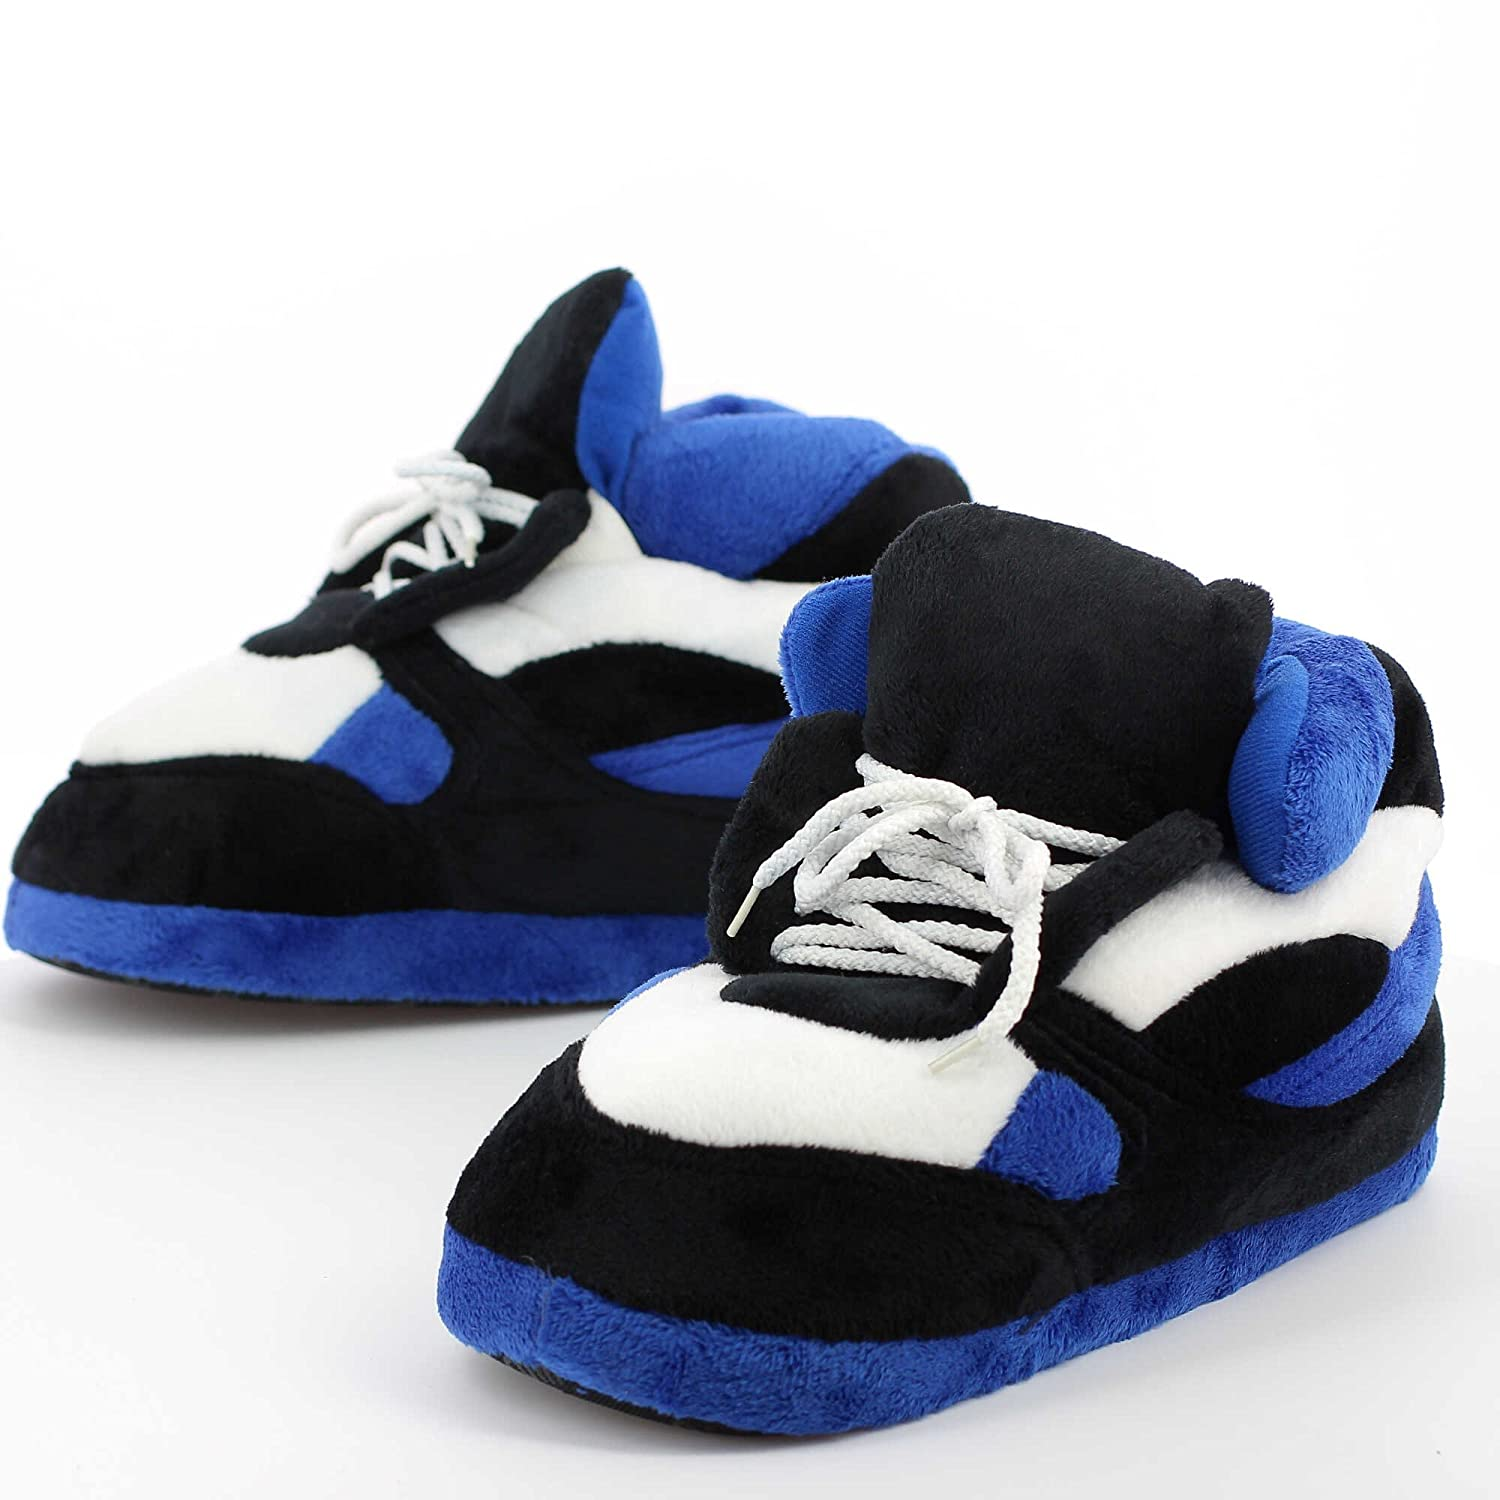 Cadeau Original Adulte Homme Femme Sleeperz Chaussons Sneakers